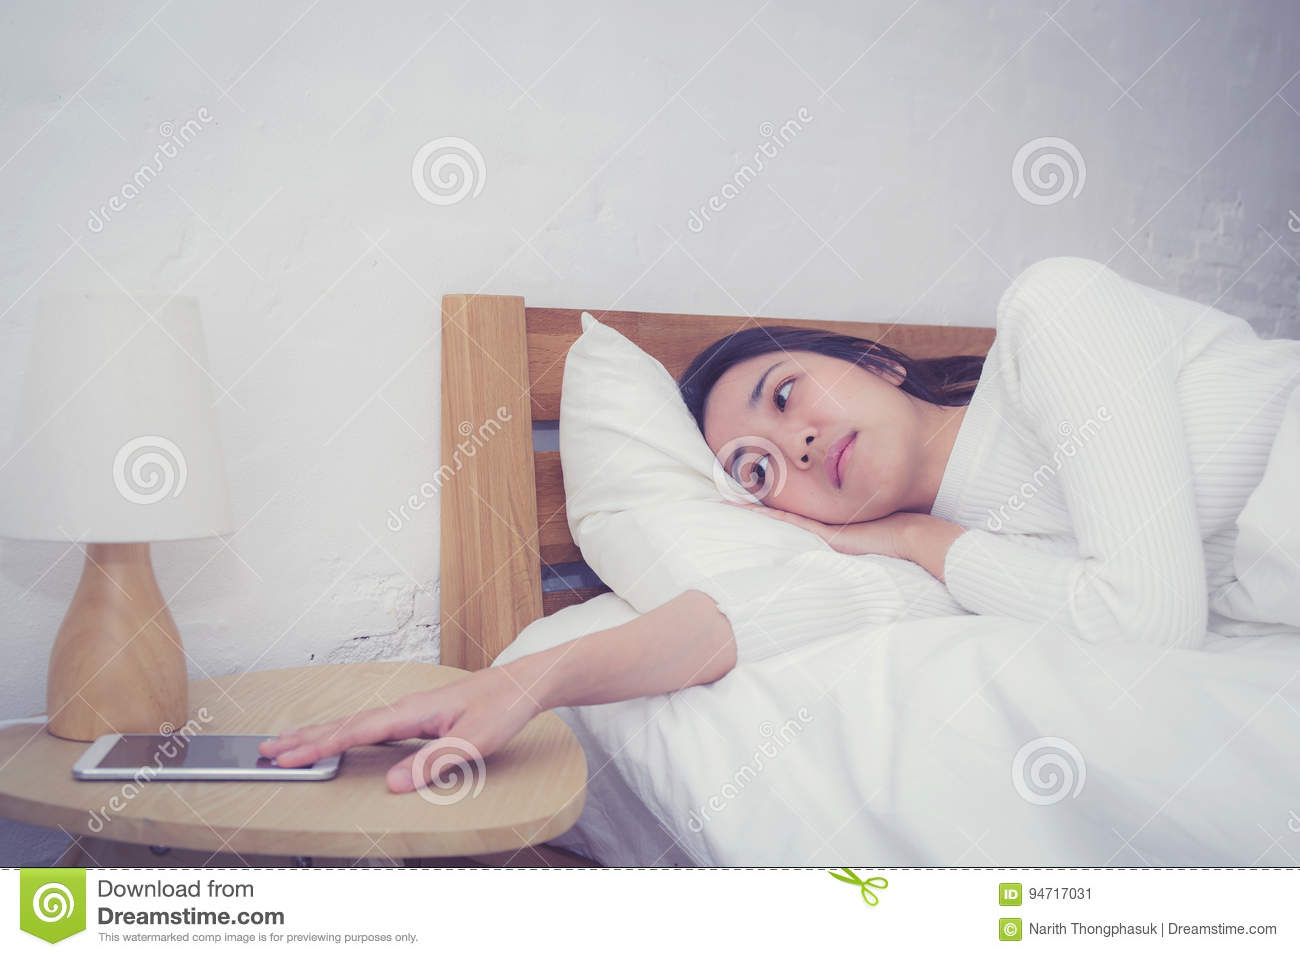 Hand of sleepy woman waking up with alarm clock on mobile phone.